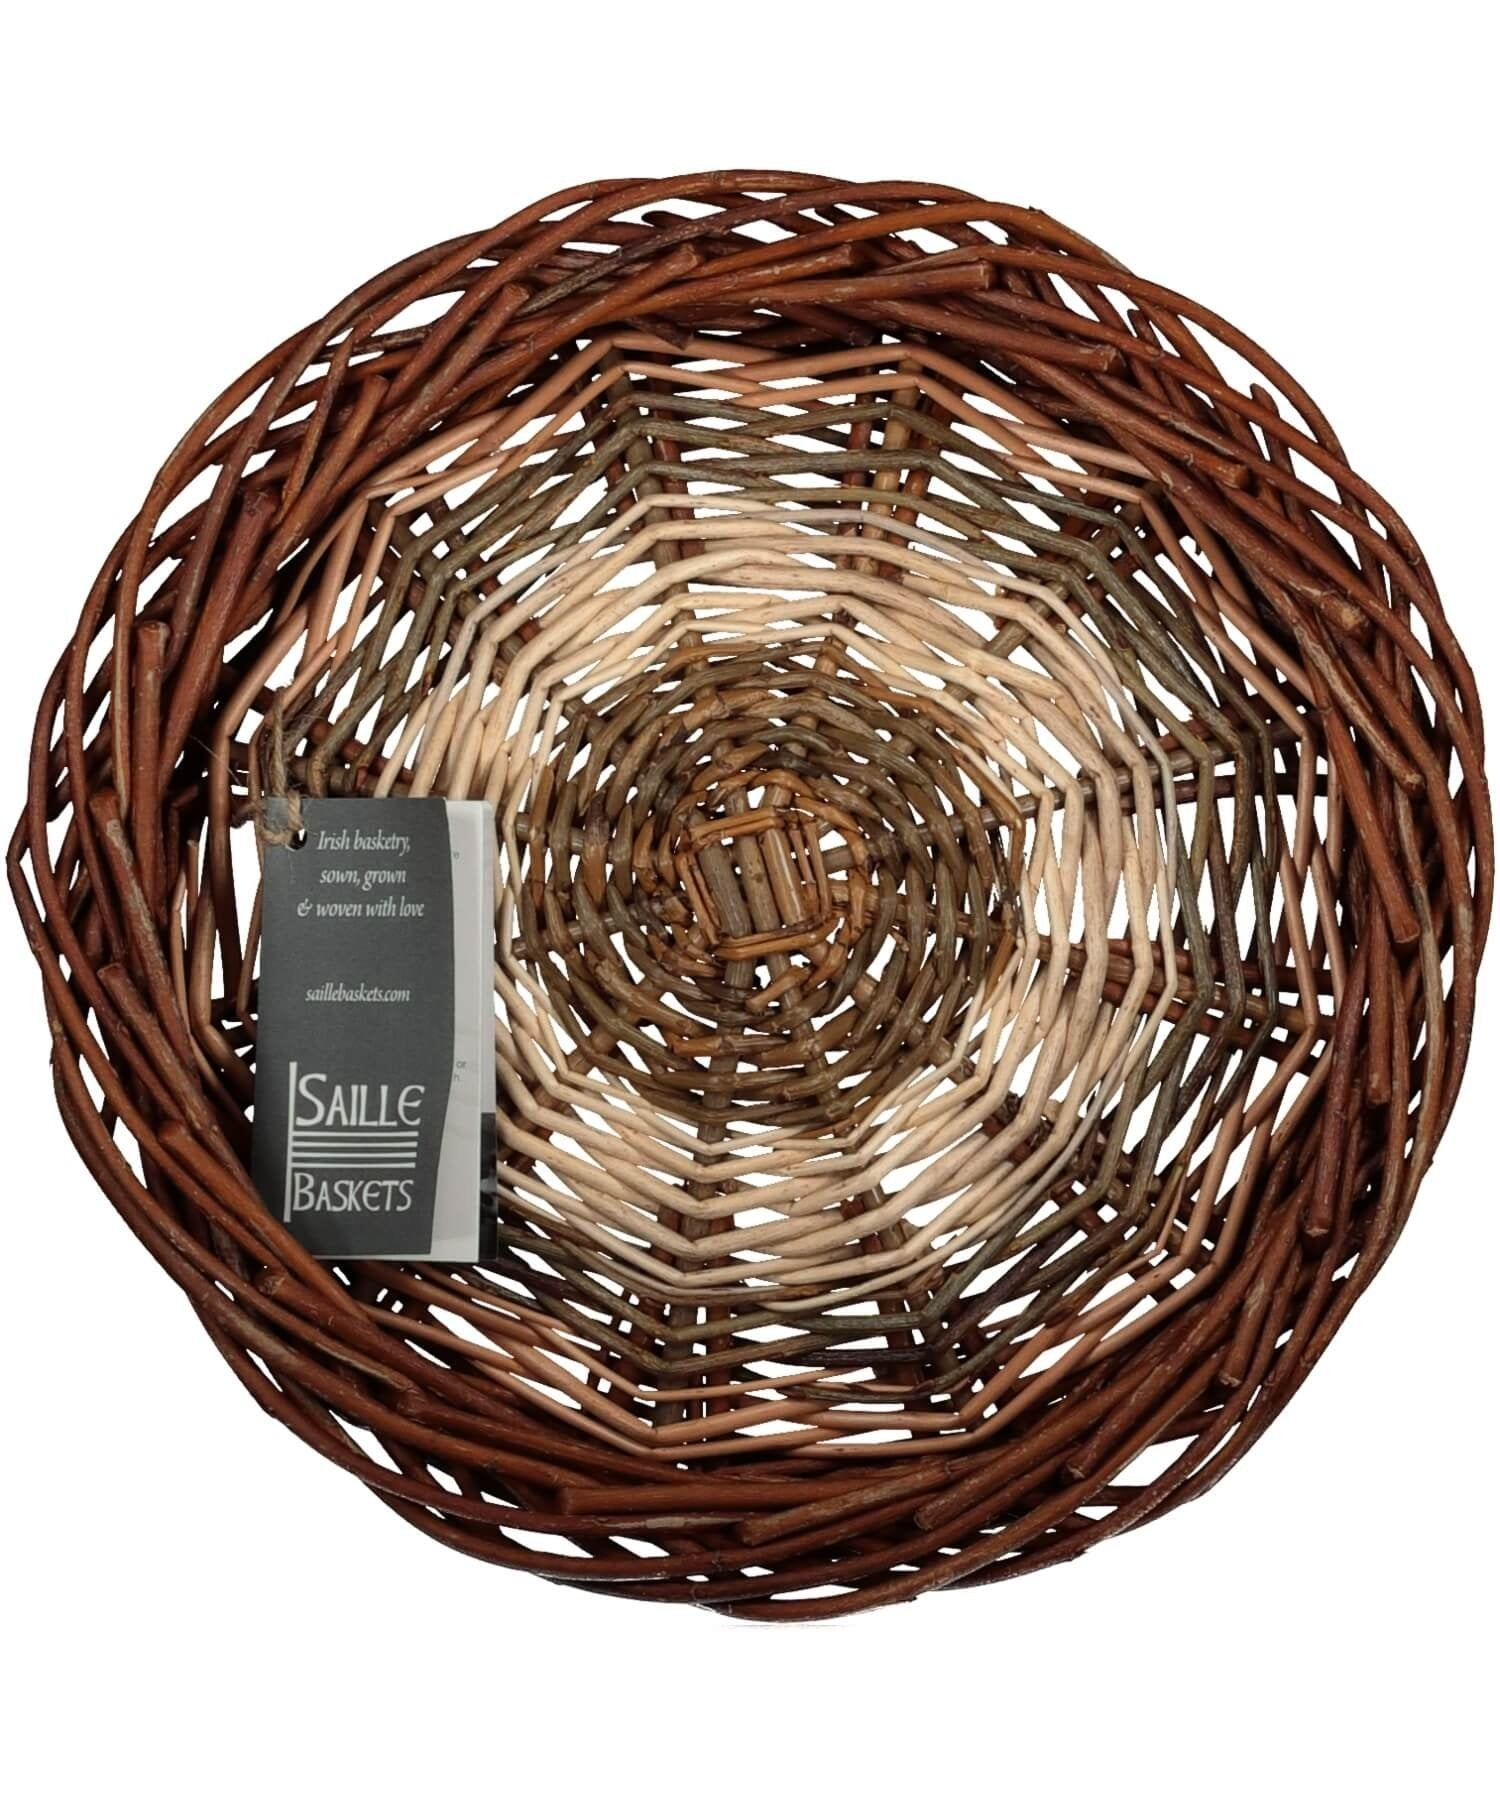 Irish Ciseog (small) Saille Baskets Wood & Slate